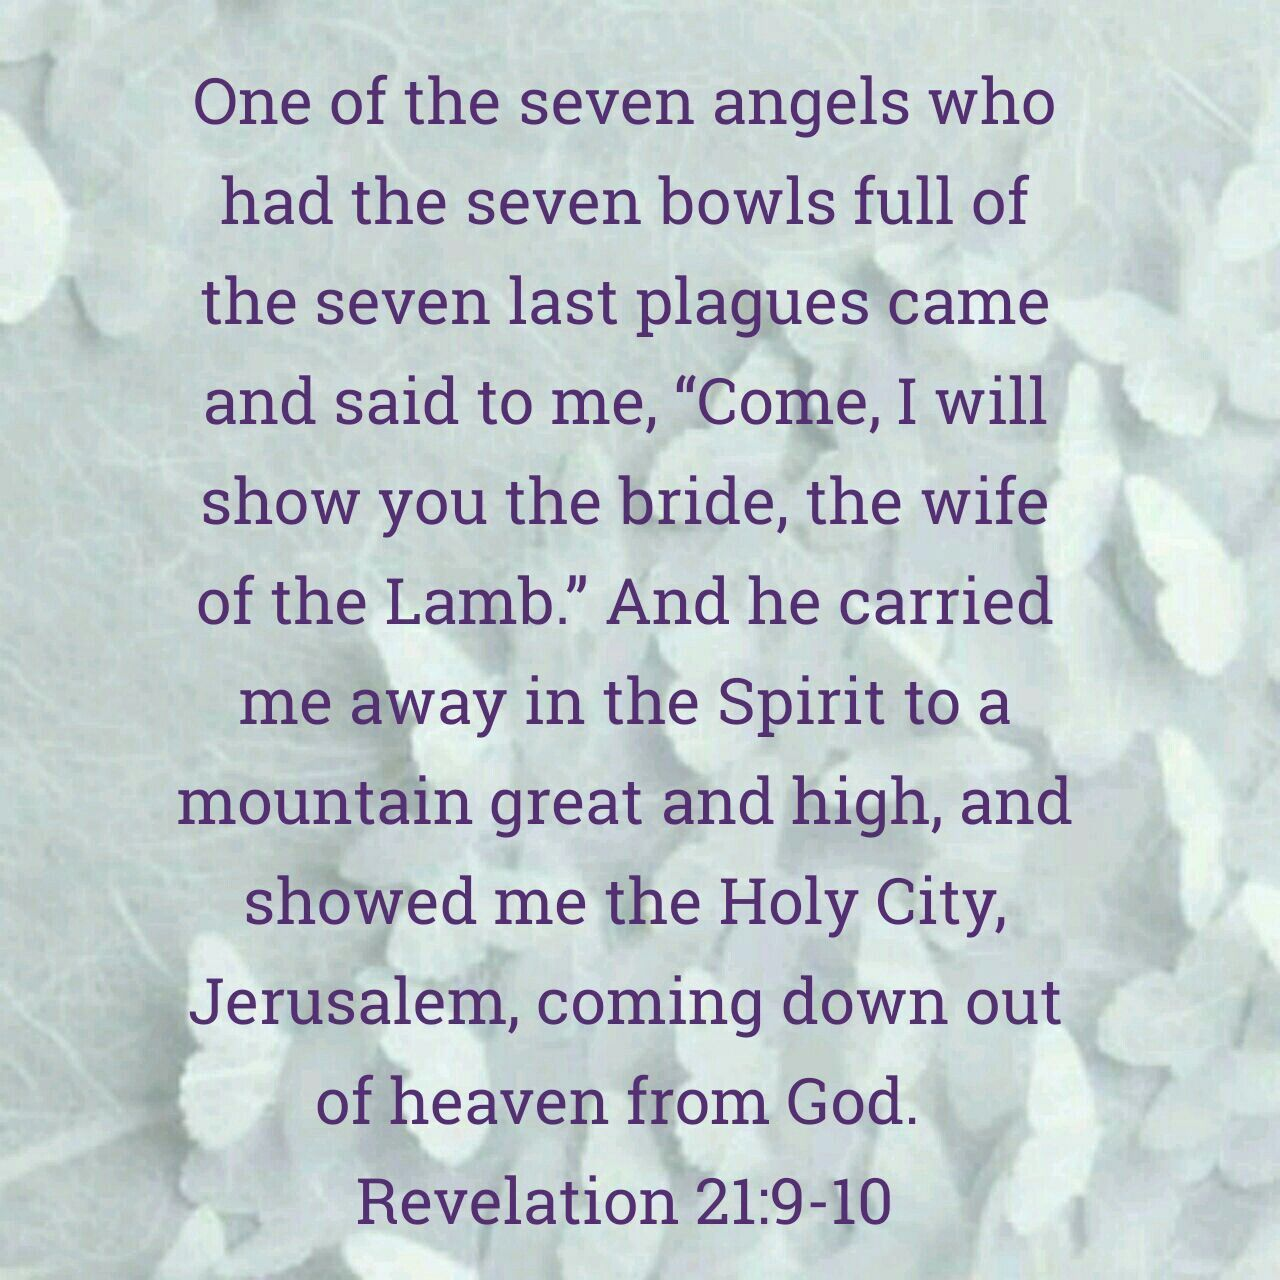 Revelation 21 9 10 3 Who Is The Wife Of The Lamb Then The Angel Said That He Would Show John The Bride The Wife Of Angel Show Sayings Revelation 21